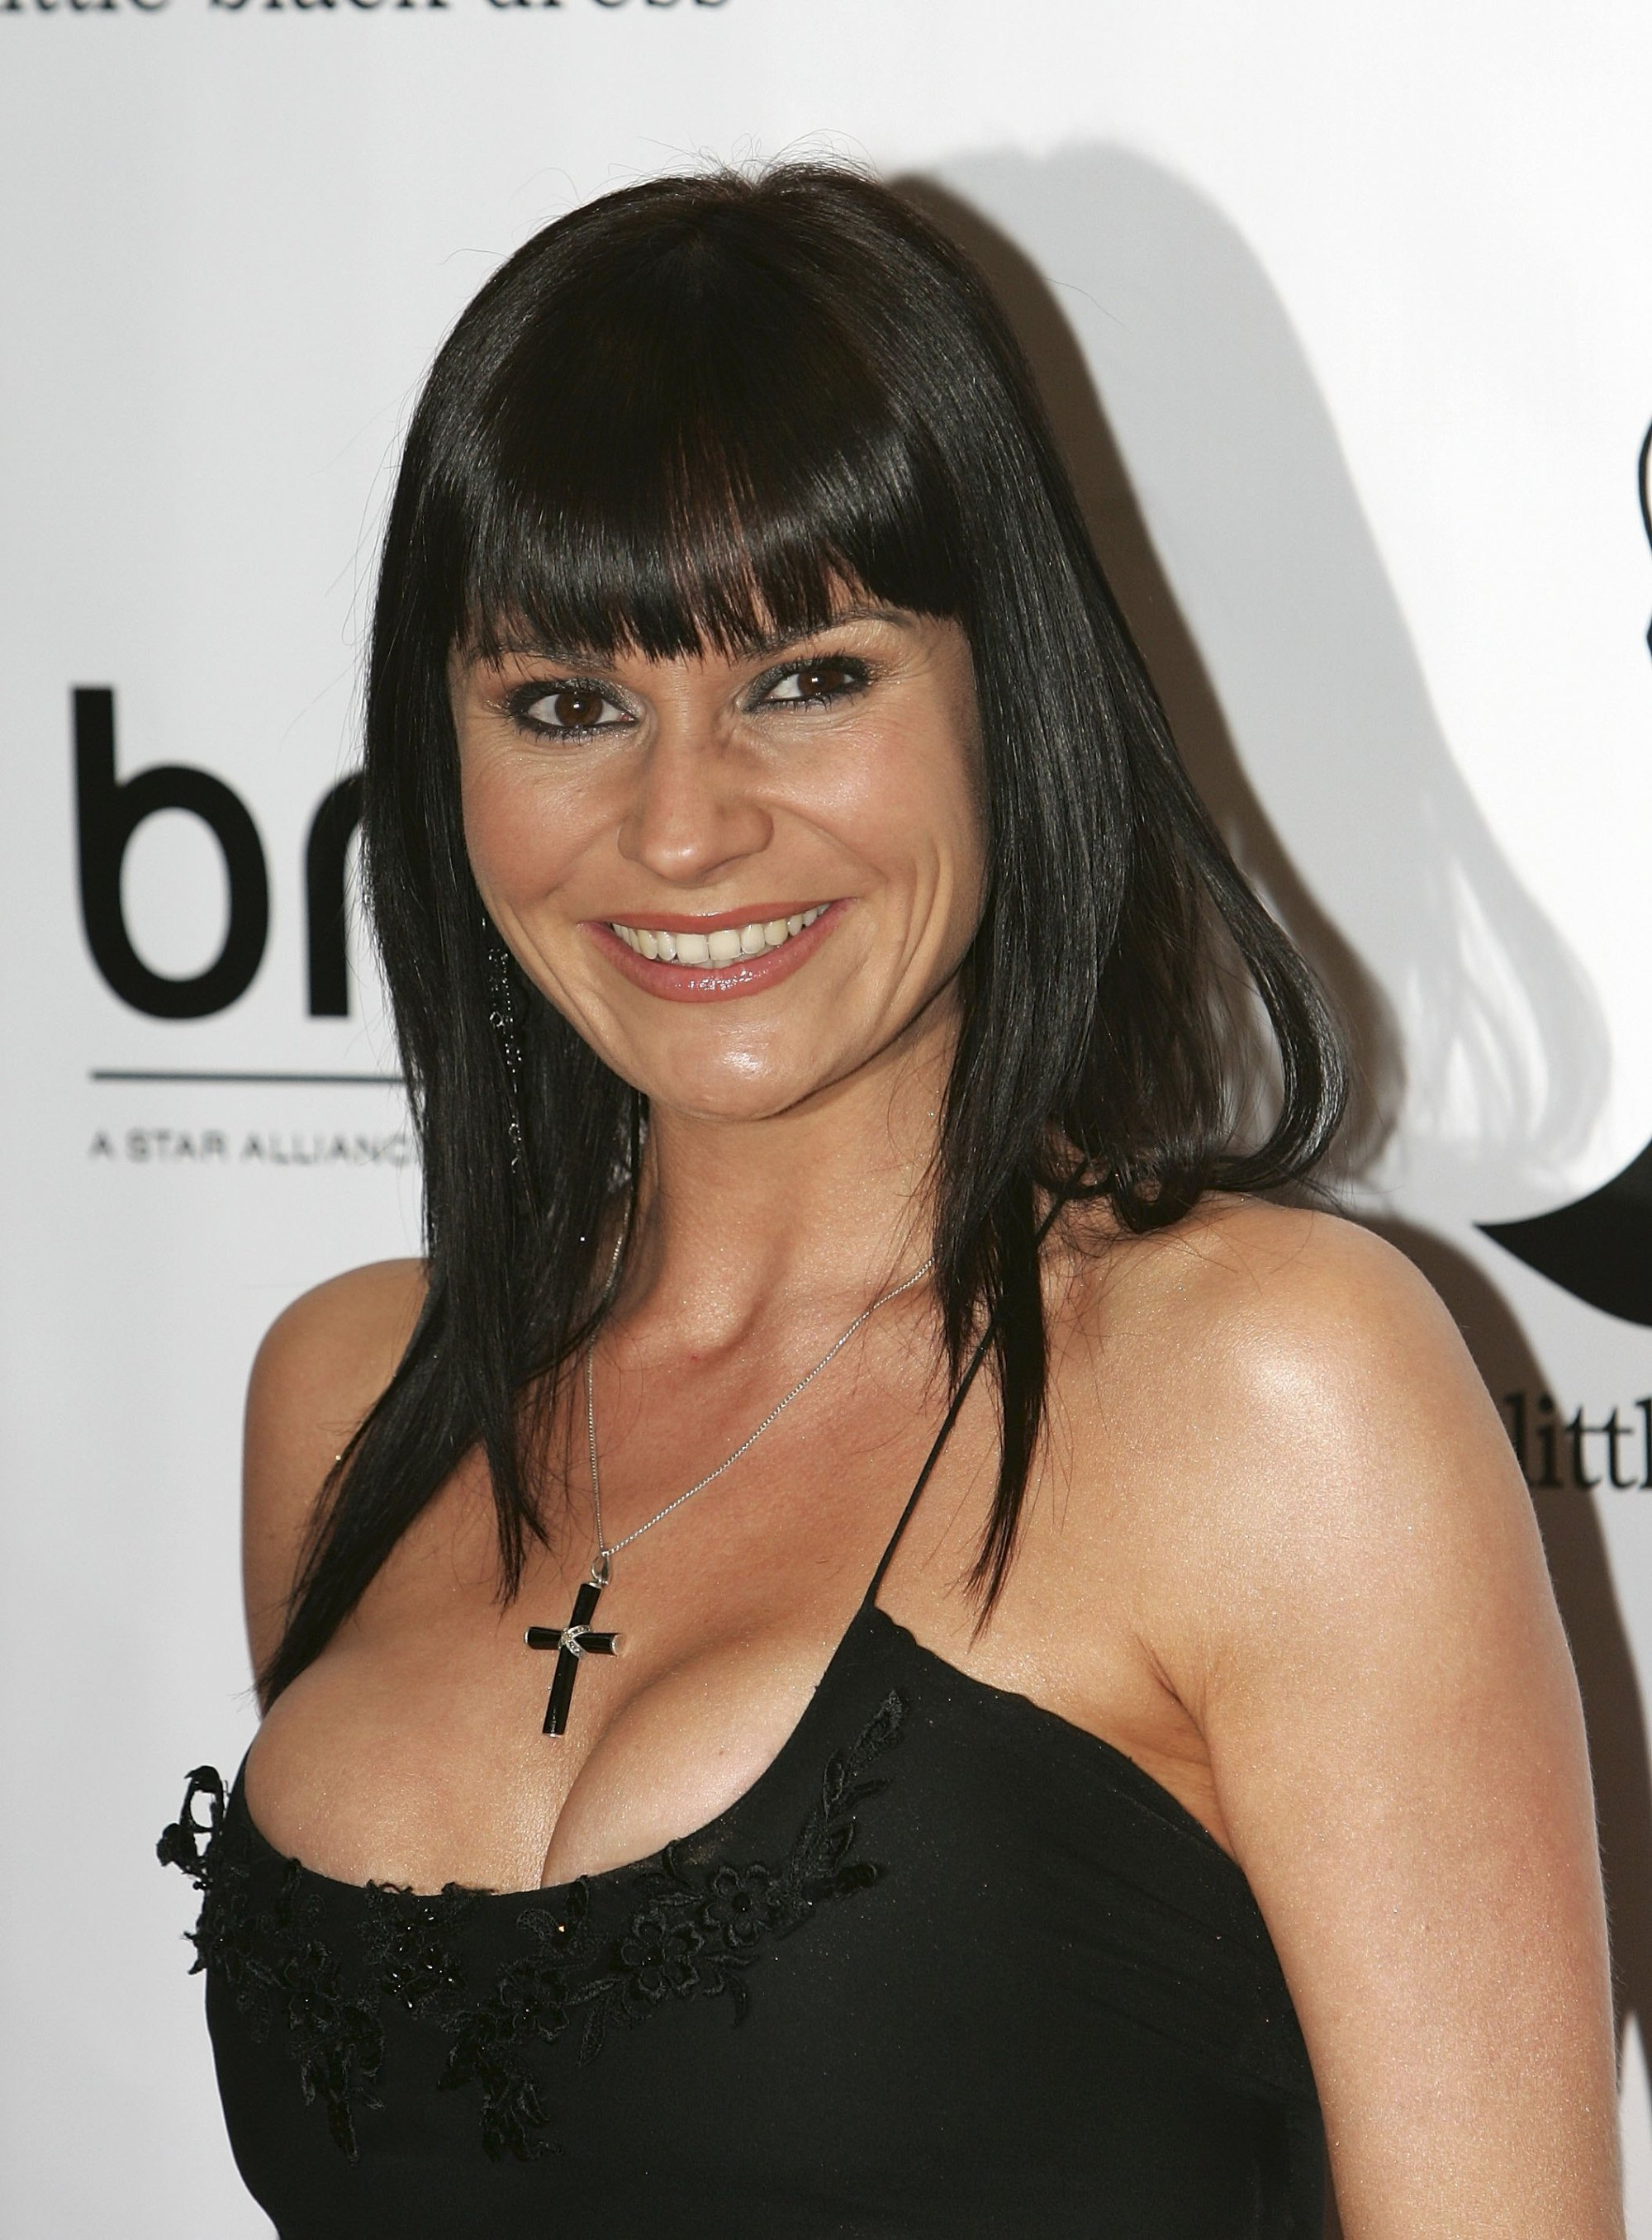 emmerdale star lucy pargeter heading for the jungle in